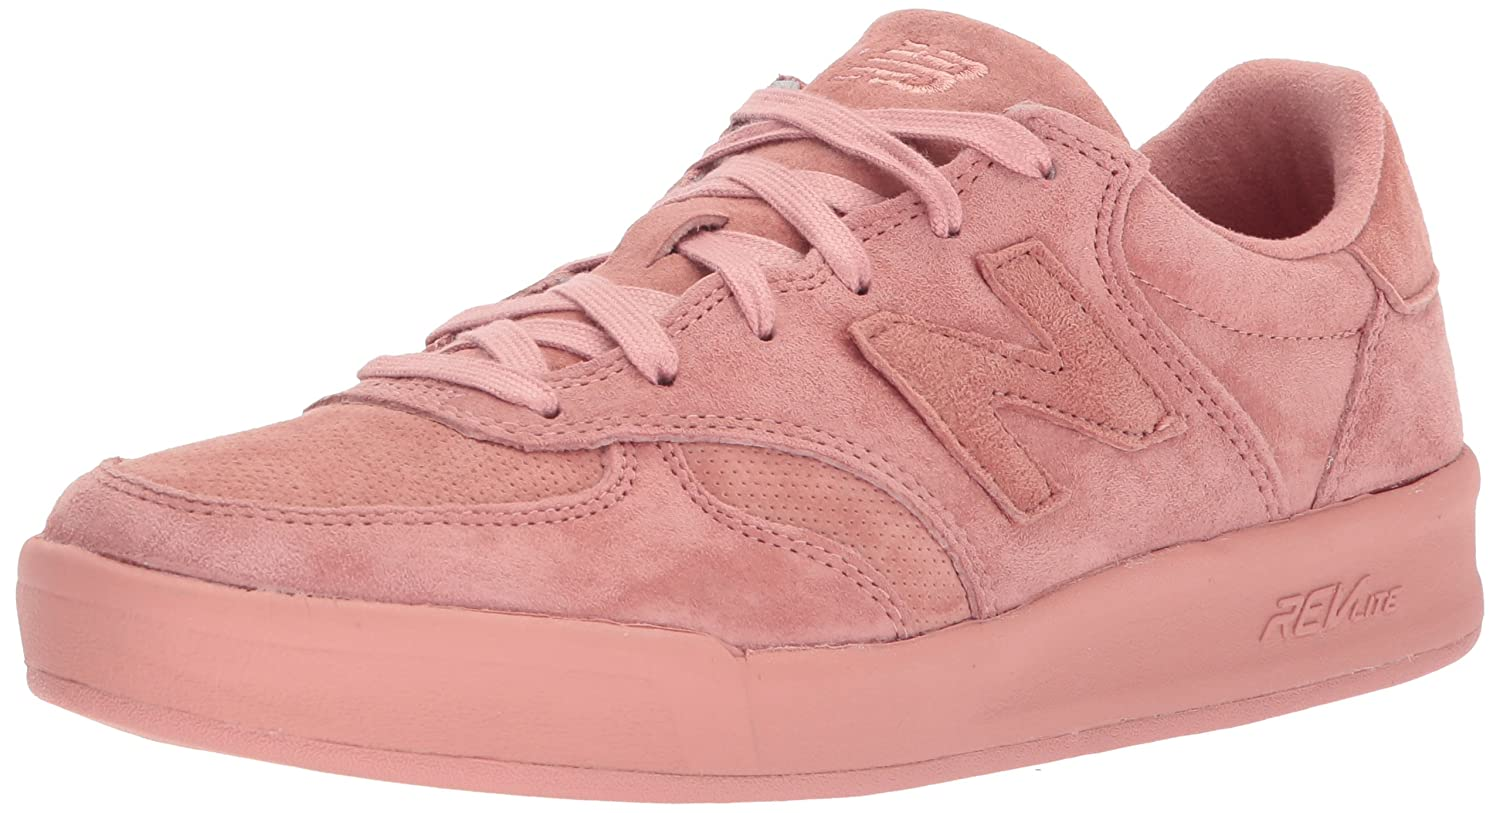 New Balance Women's 300v1 Sneaker B0712162XJ 11 D US|Dusted Peach/Dusted Peach